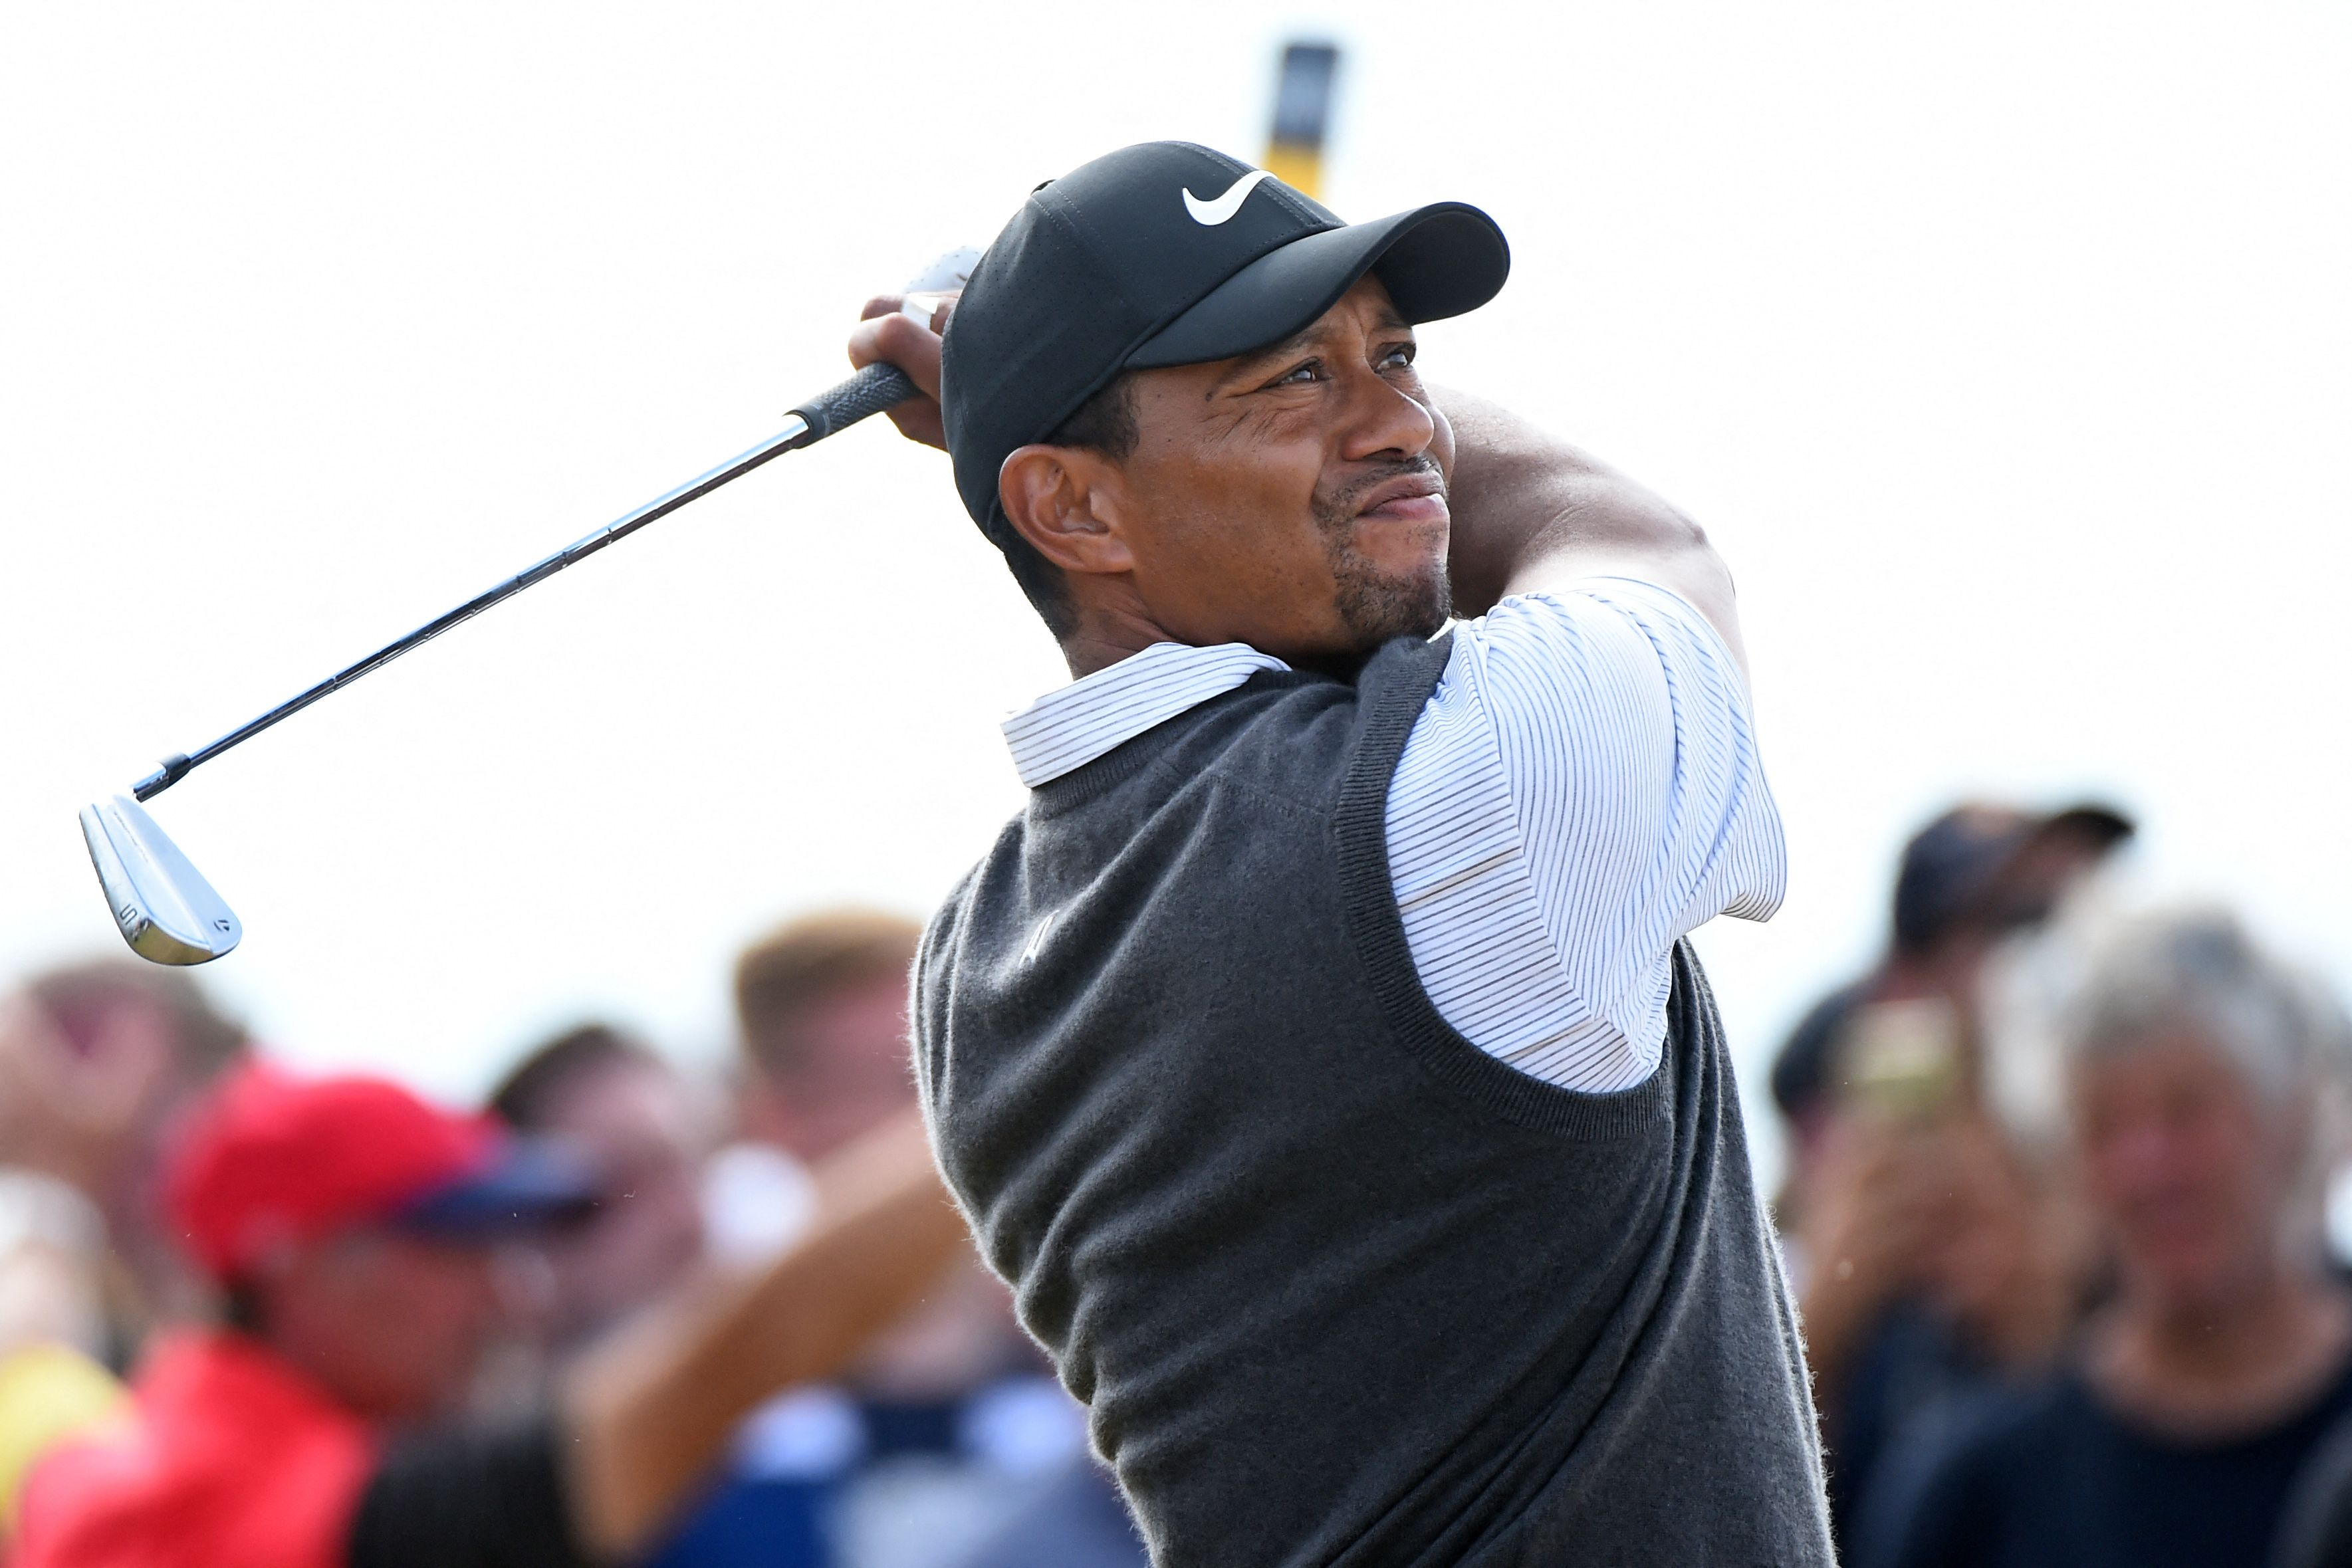 Tiger Woods faces hard recovery from serious injuries in car crash